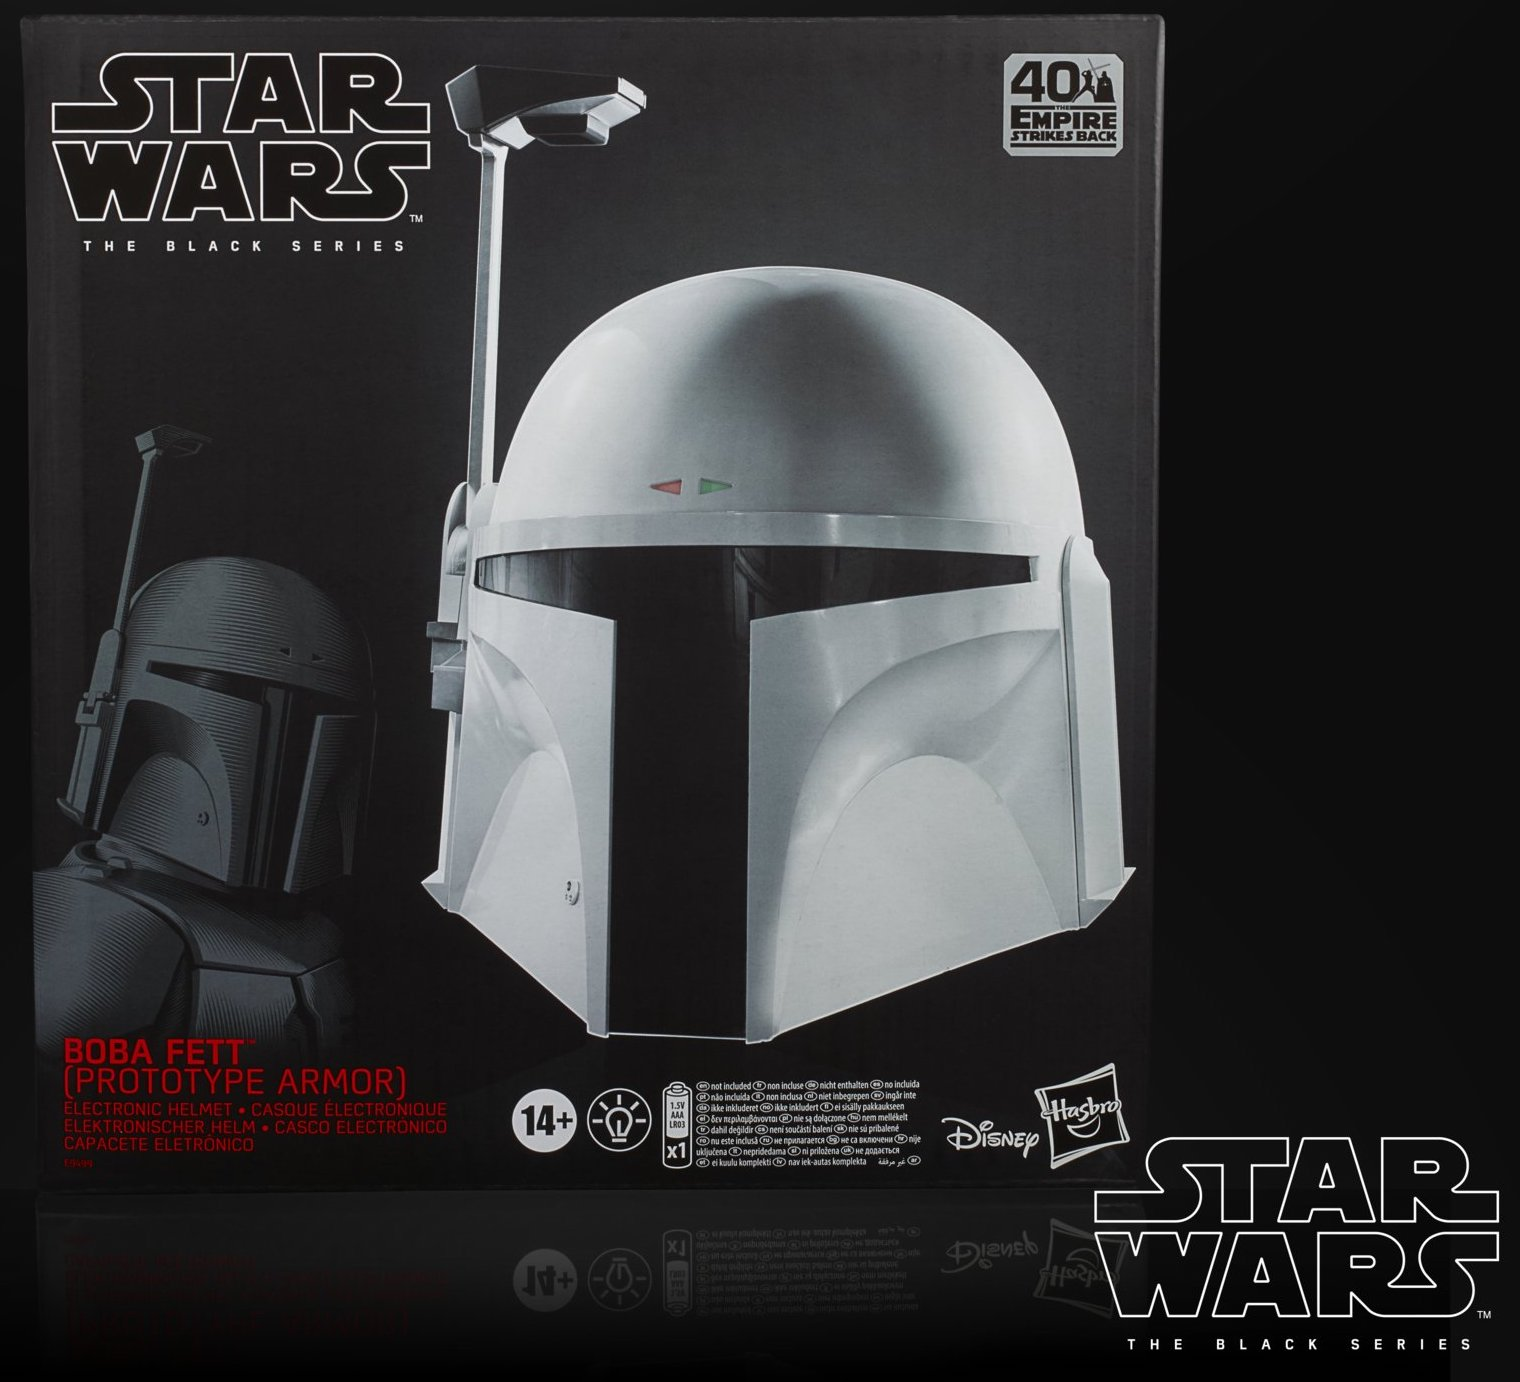 Star Wars The Black Series Boba Fett (Prototype Armor) Electronic Helmet